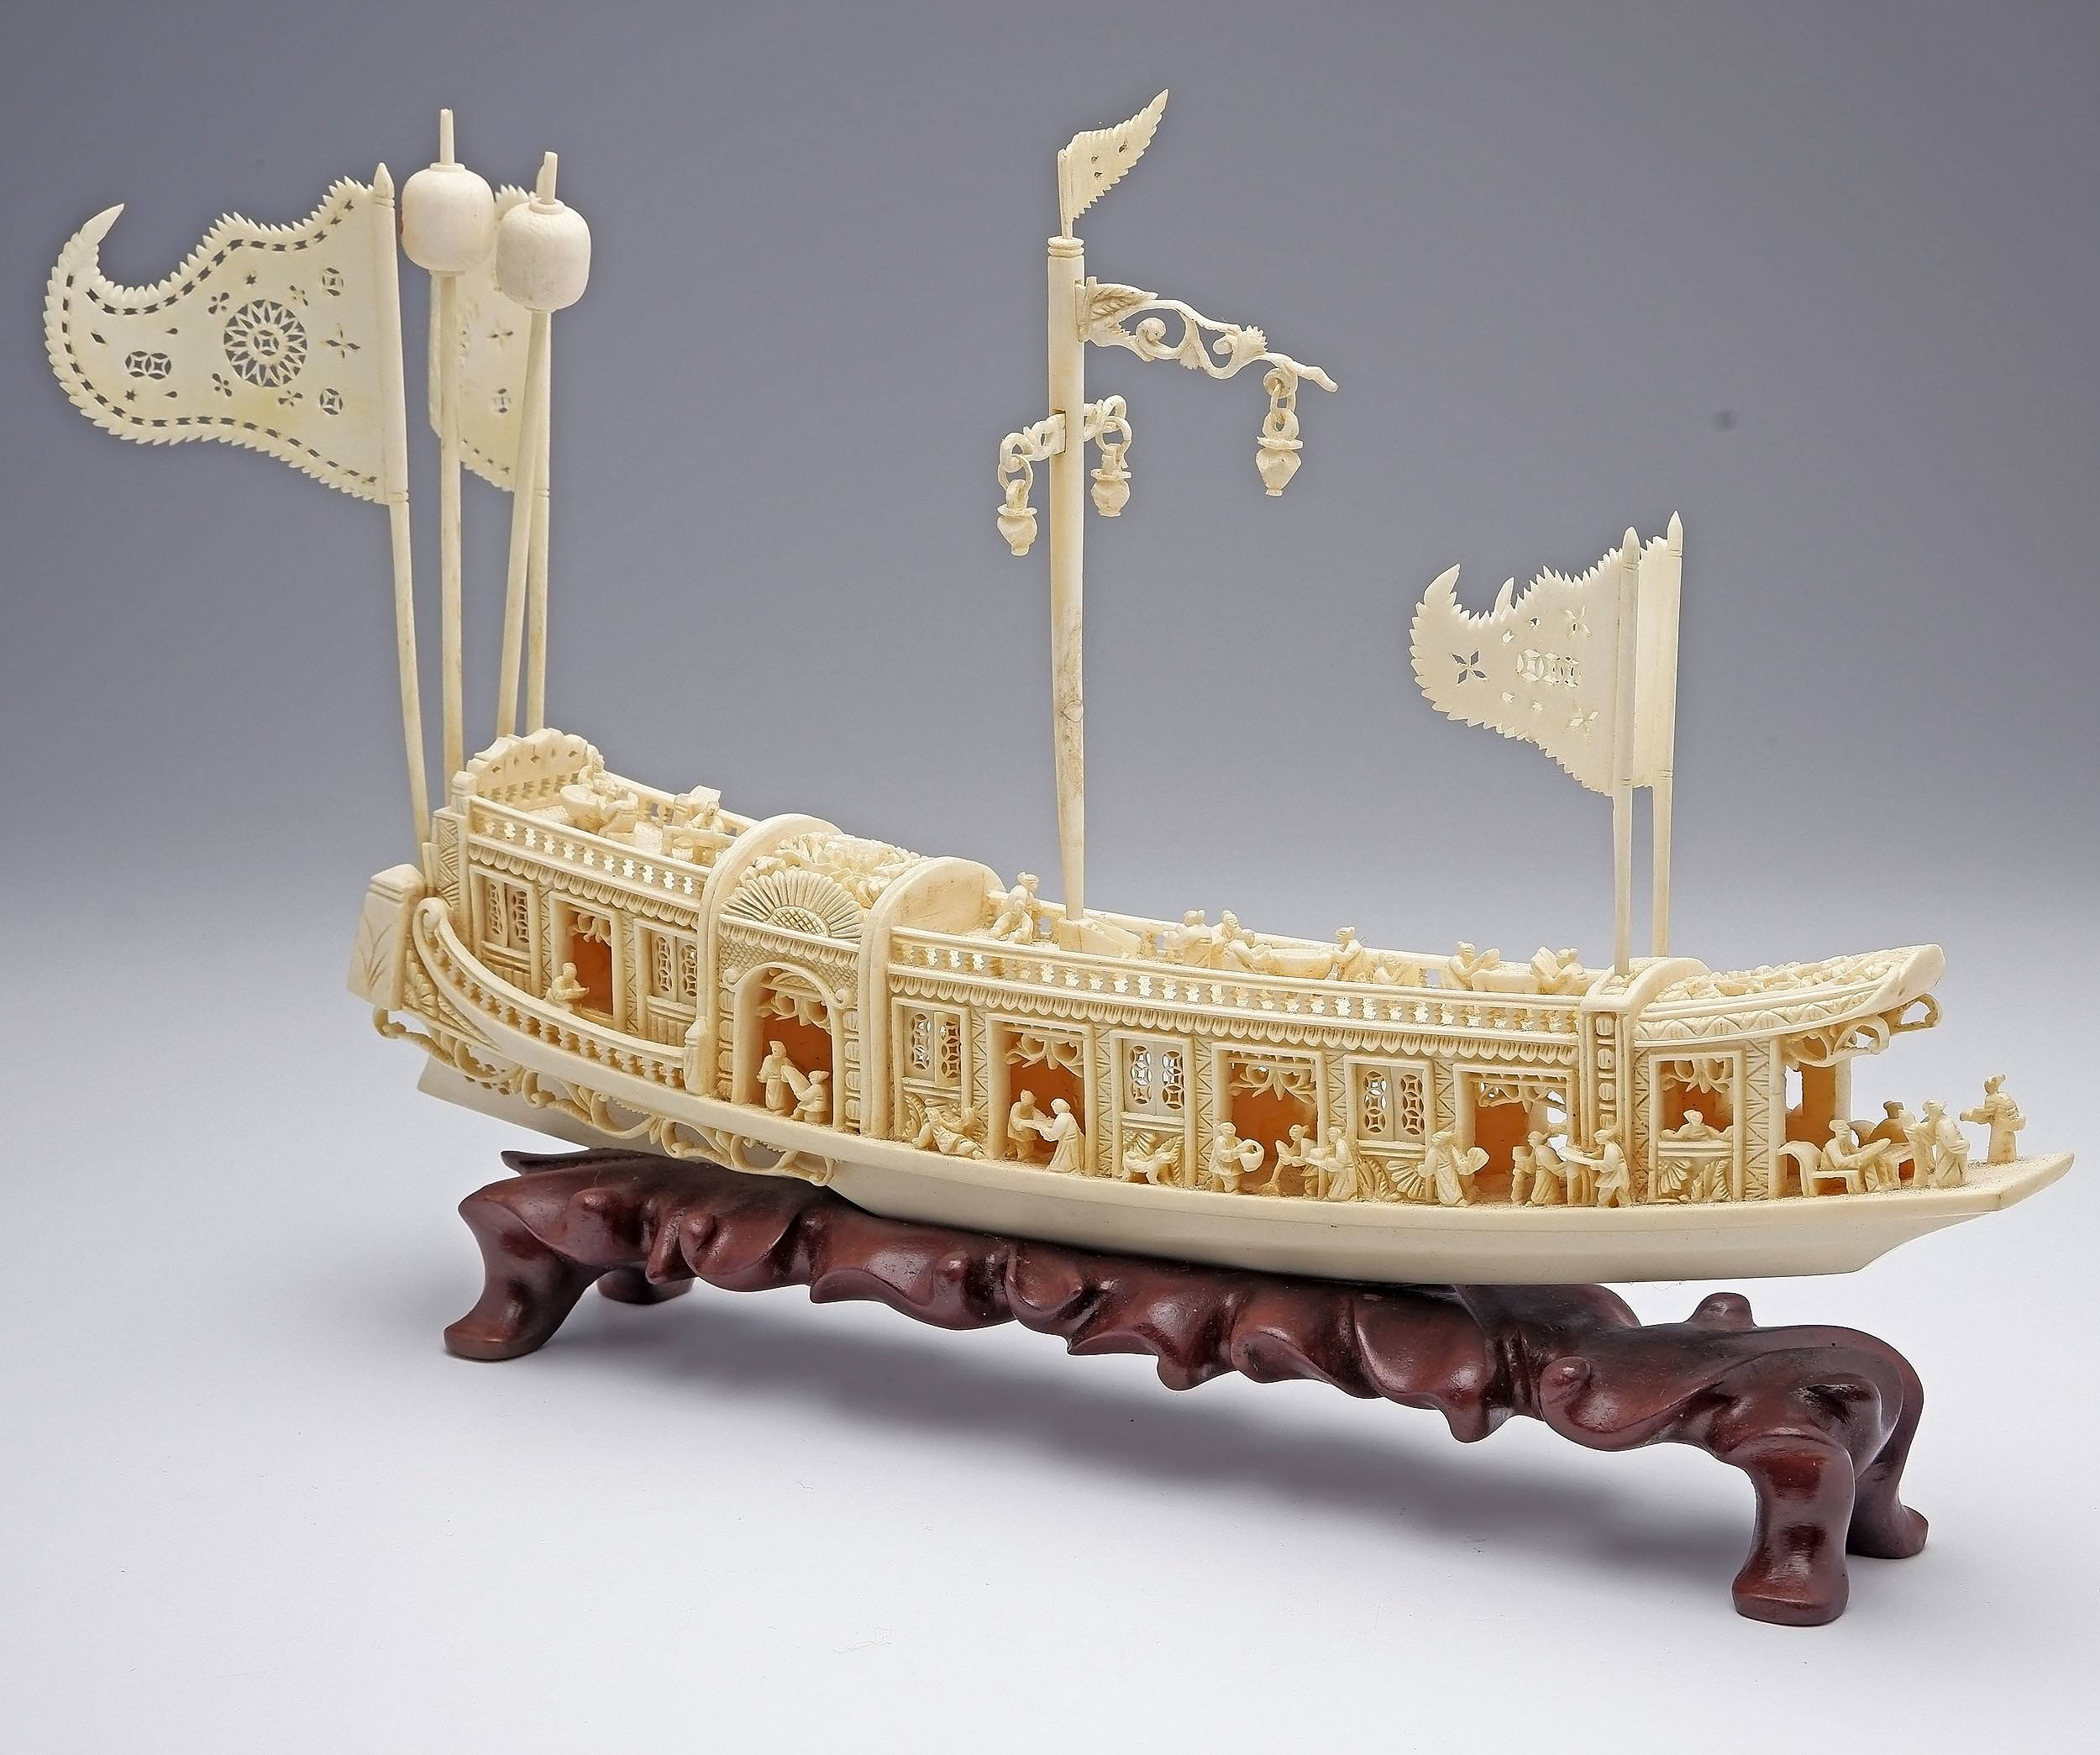 'Superb Finely Carved Chinese Ivory Model of Junk on Hardwood Stand, Mid 20th Century'